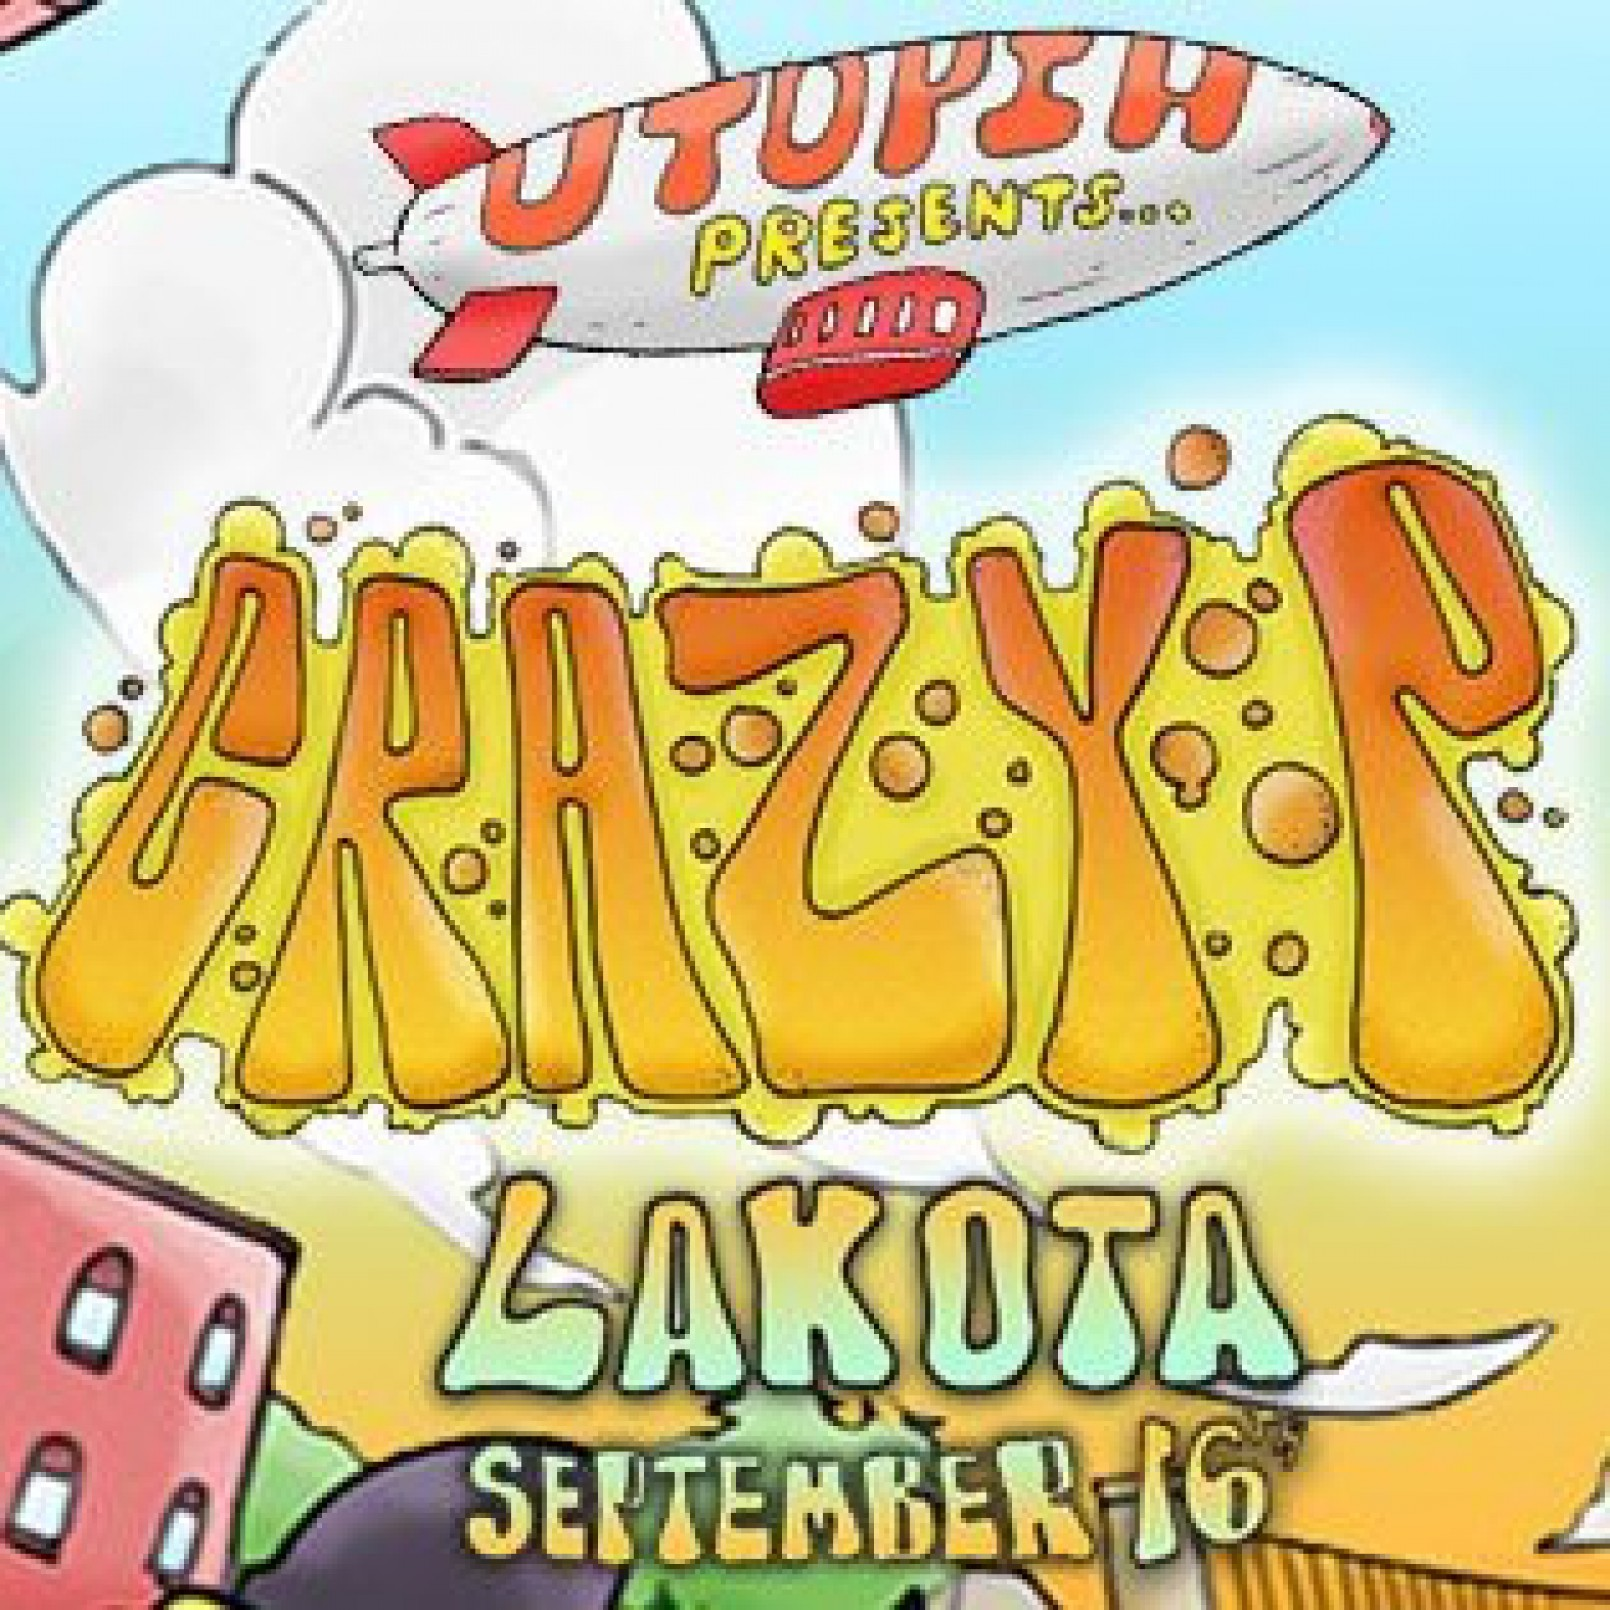 Utopia Presents: Crazy P (DJ set)